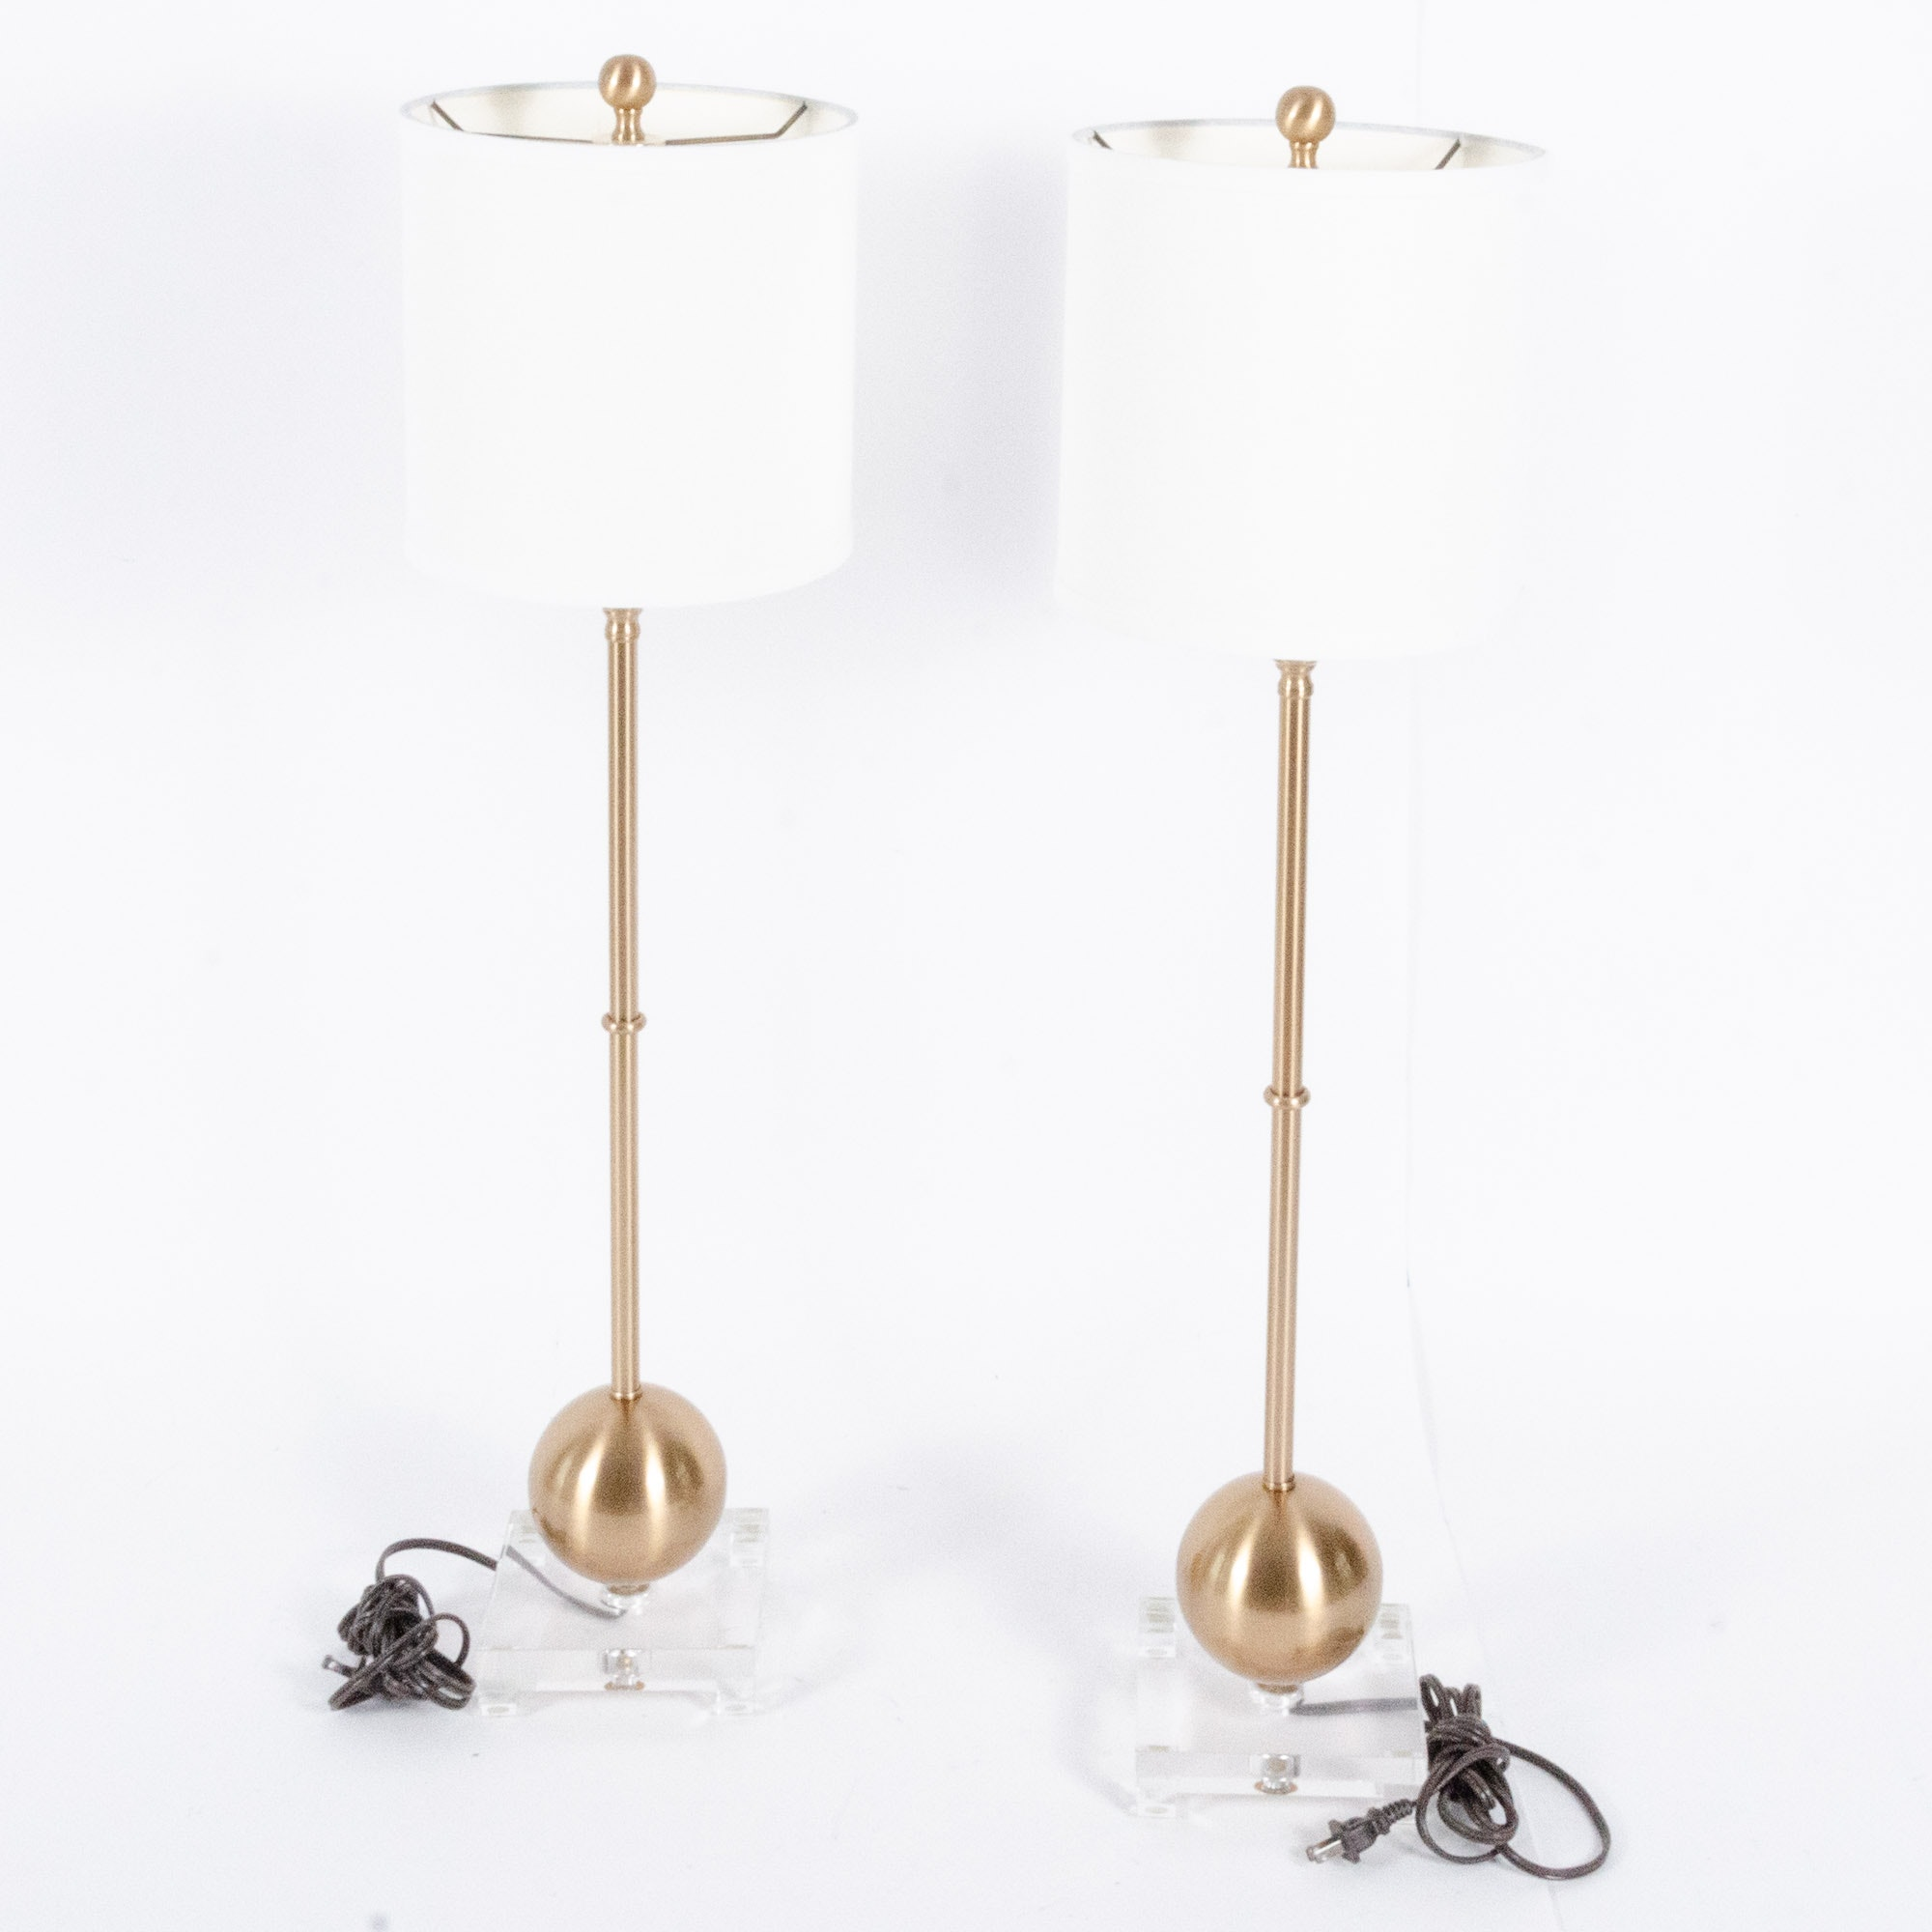 Contemporary Table Lamps in Brass and Acrylic